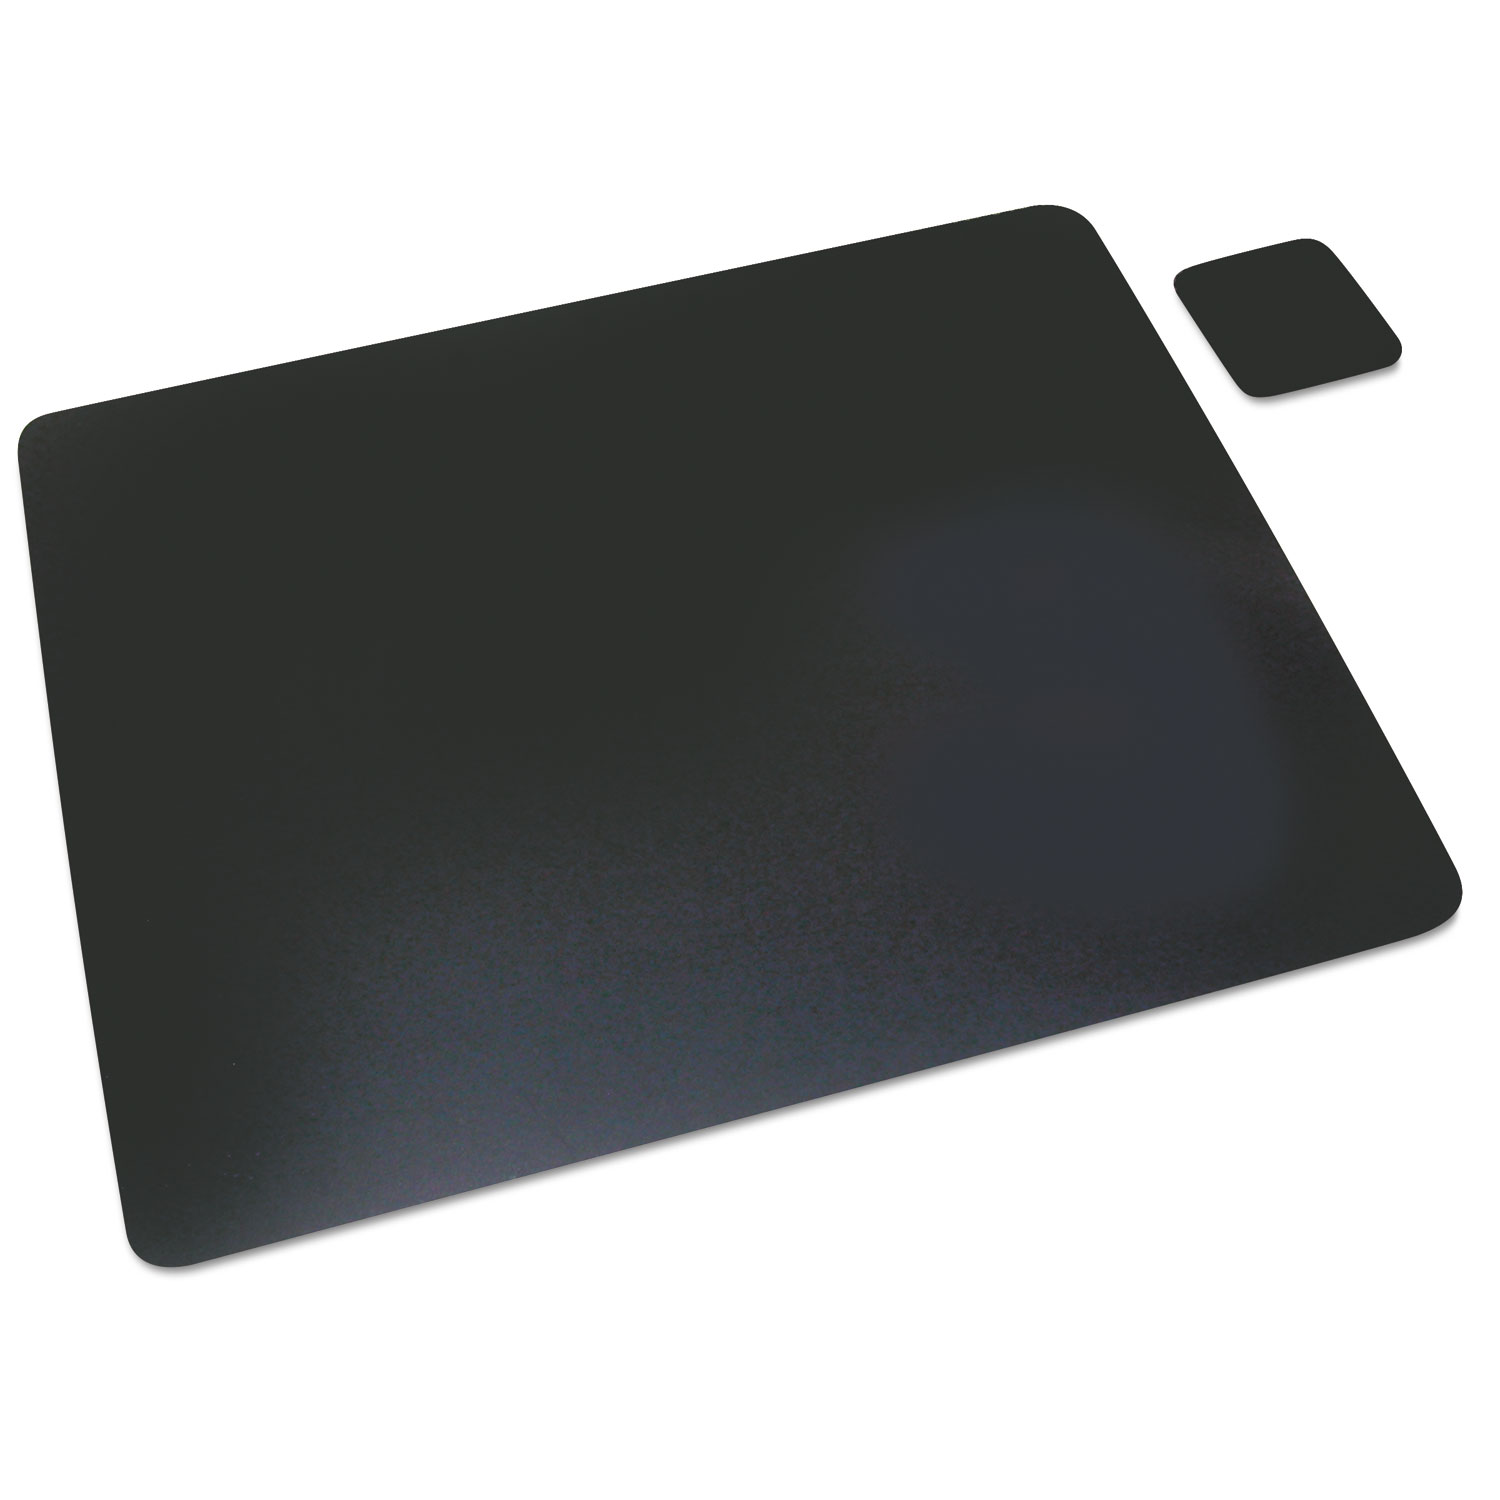 Artistic Leather Desk Pad With Coaster